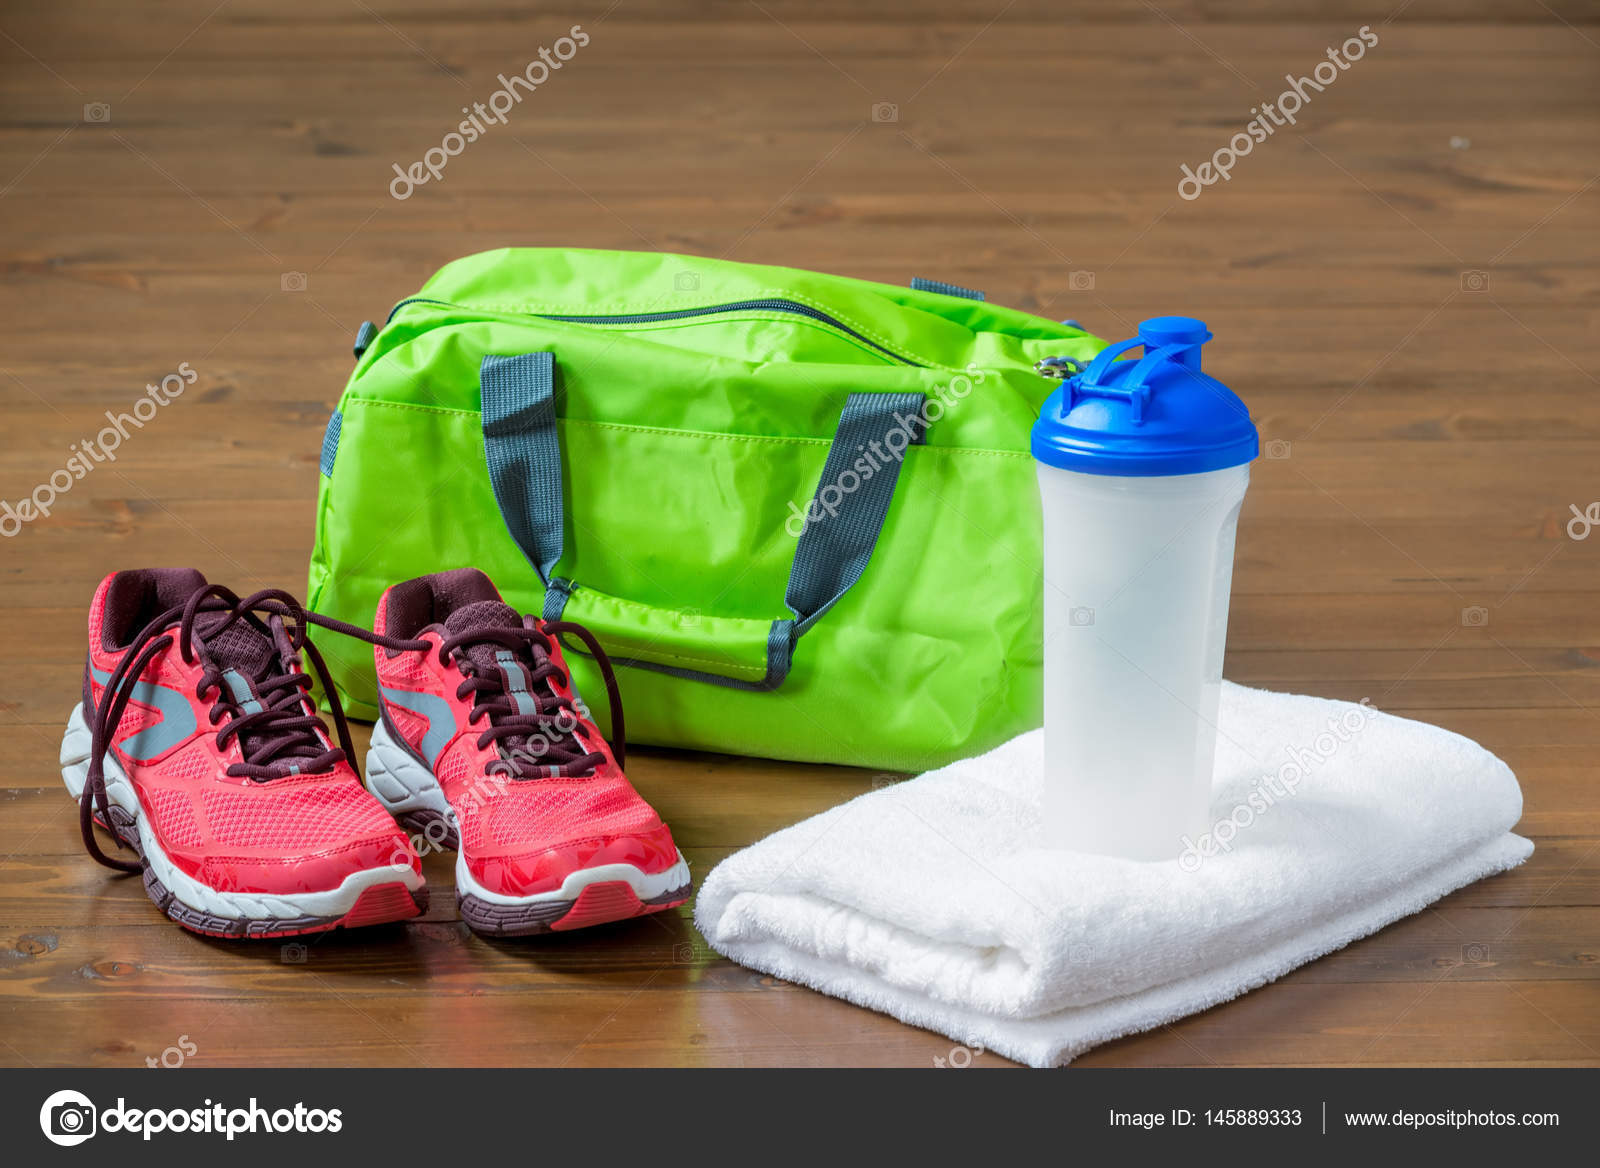 94eff90b47 Green sports bag and pink sneakers near a towel with a bottle fo — Stock  Photo